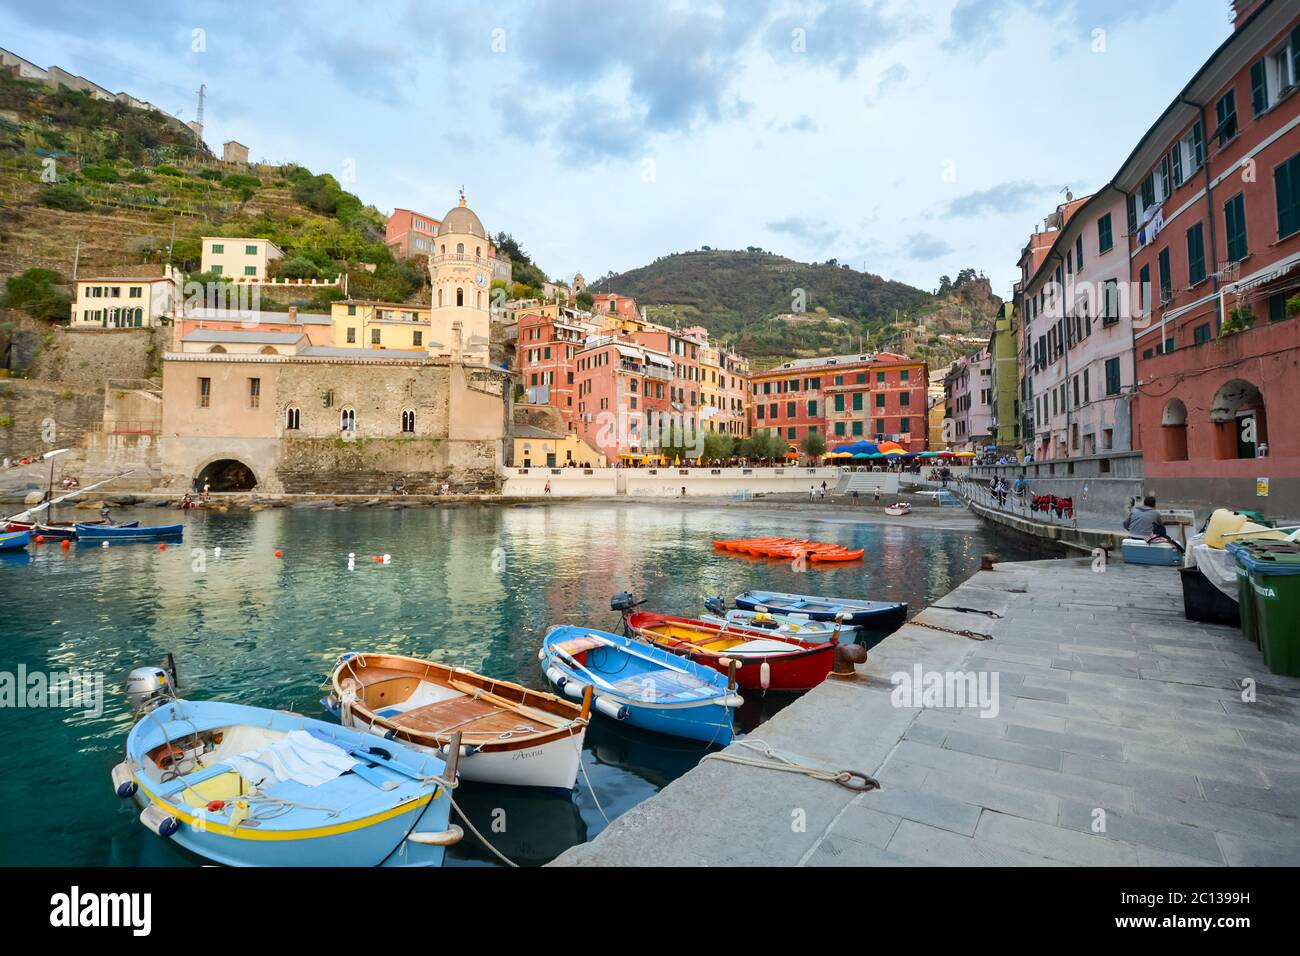 Boats line the small harbor of the colorful, picturesque village of Vernazza, Italy, one of the Cinque Terre villages in the Ligurian area of Italy. Stock Photo